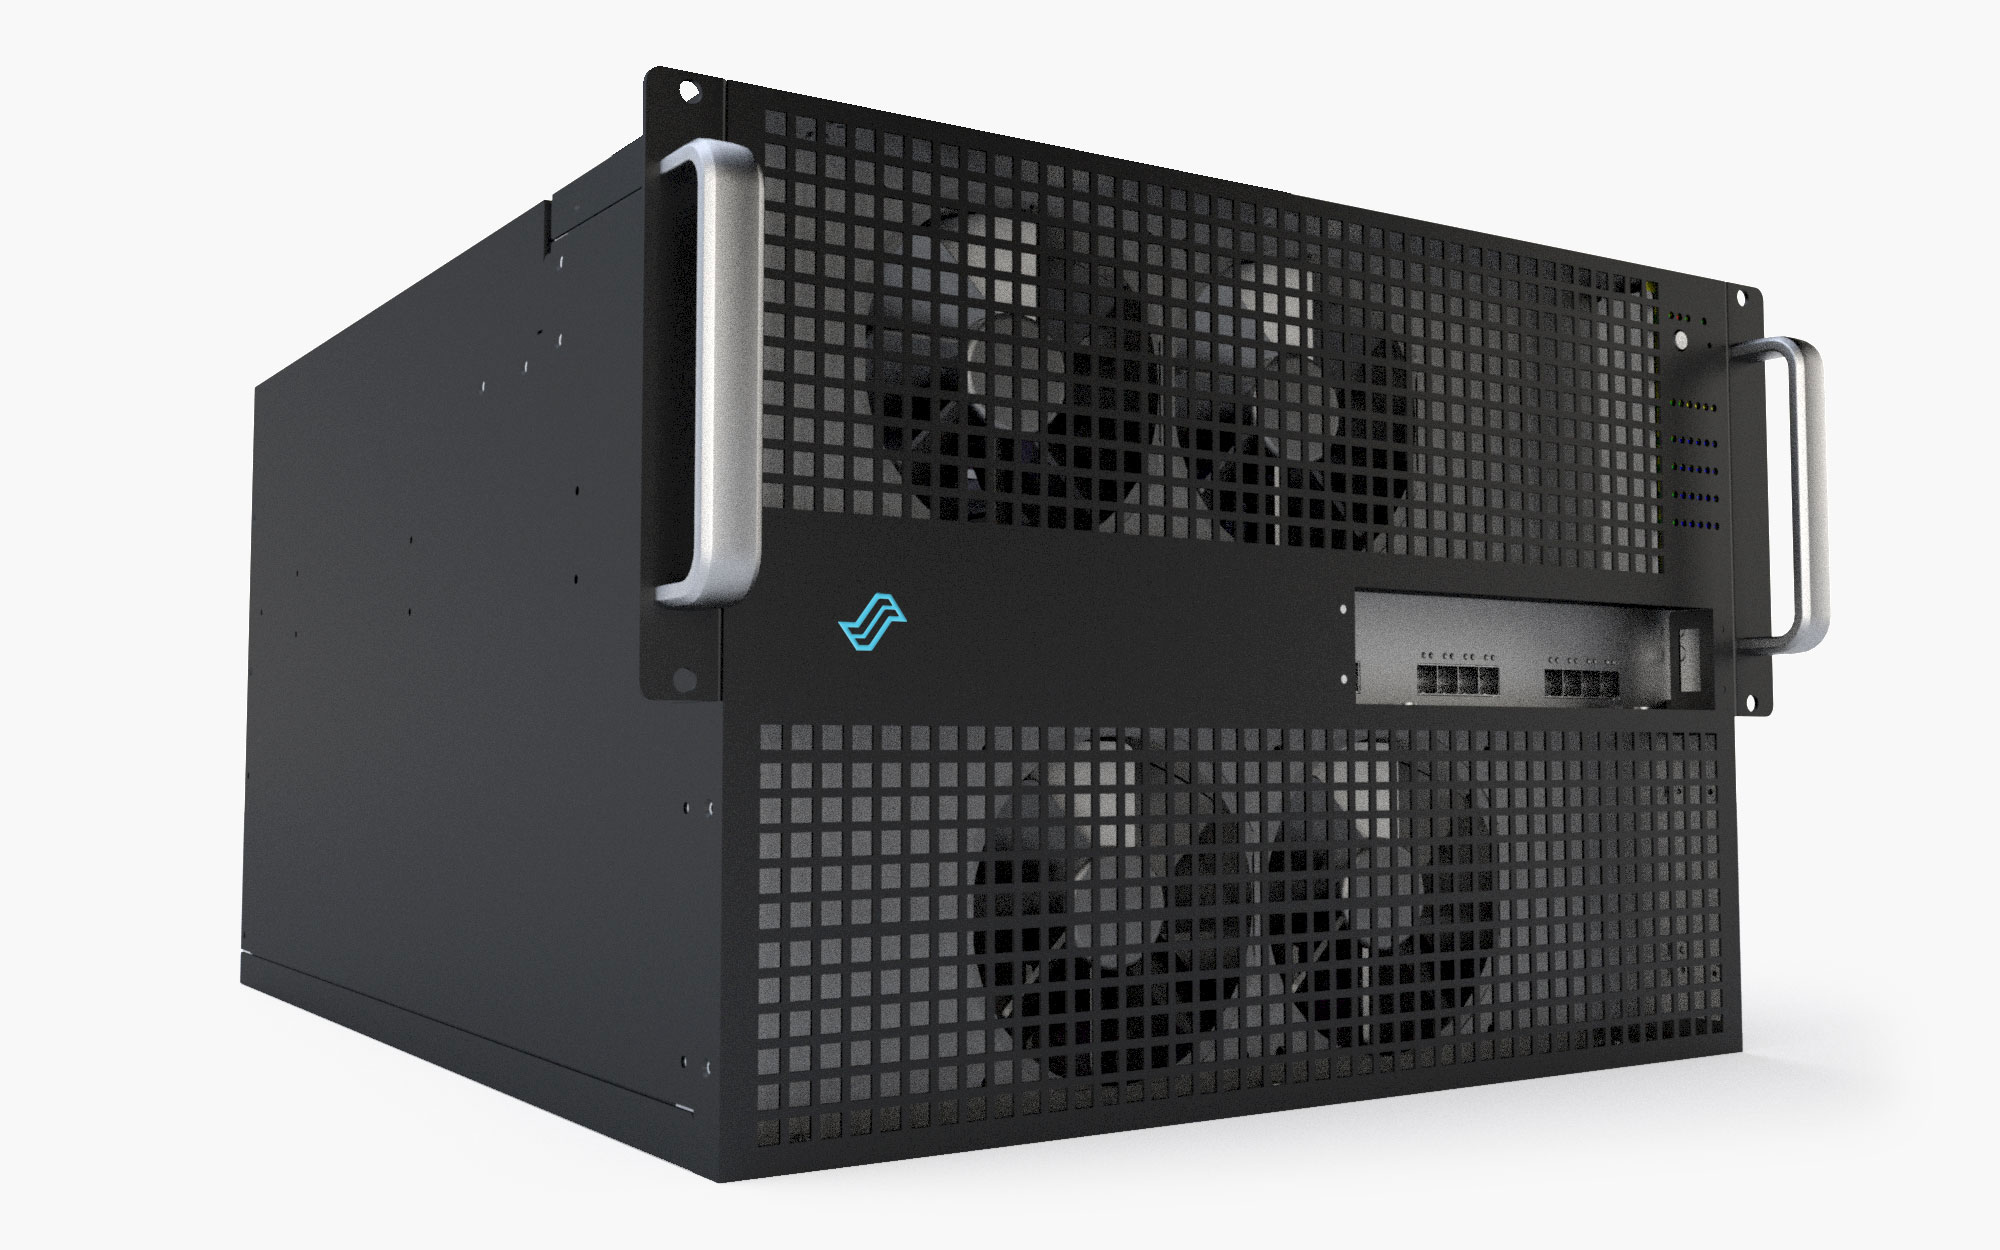 Liqid composable infrastructure LQD300x20X expansion chassis solutions